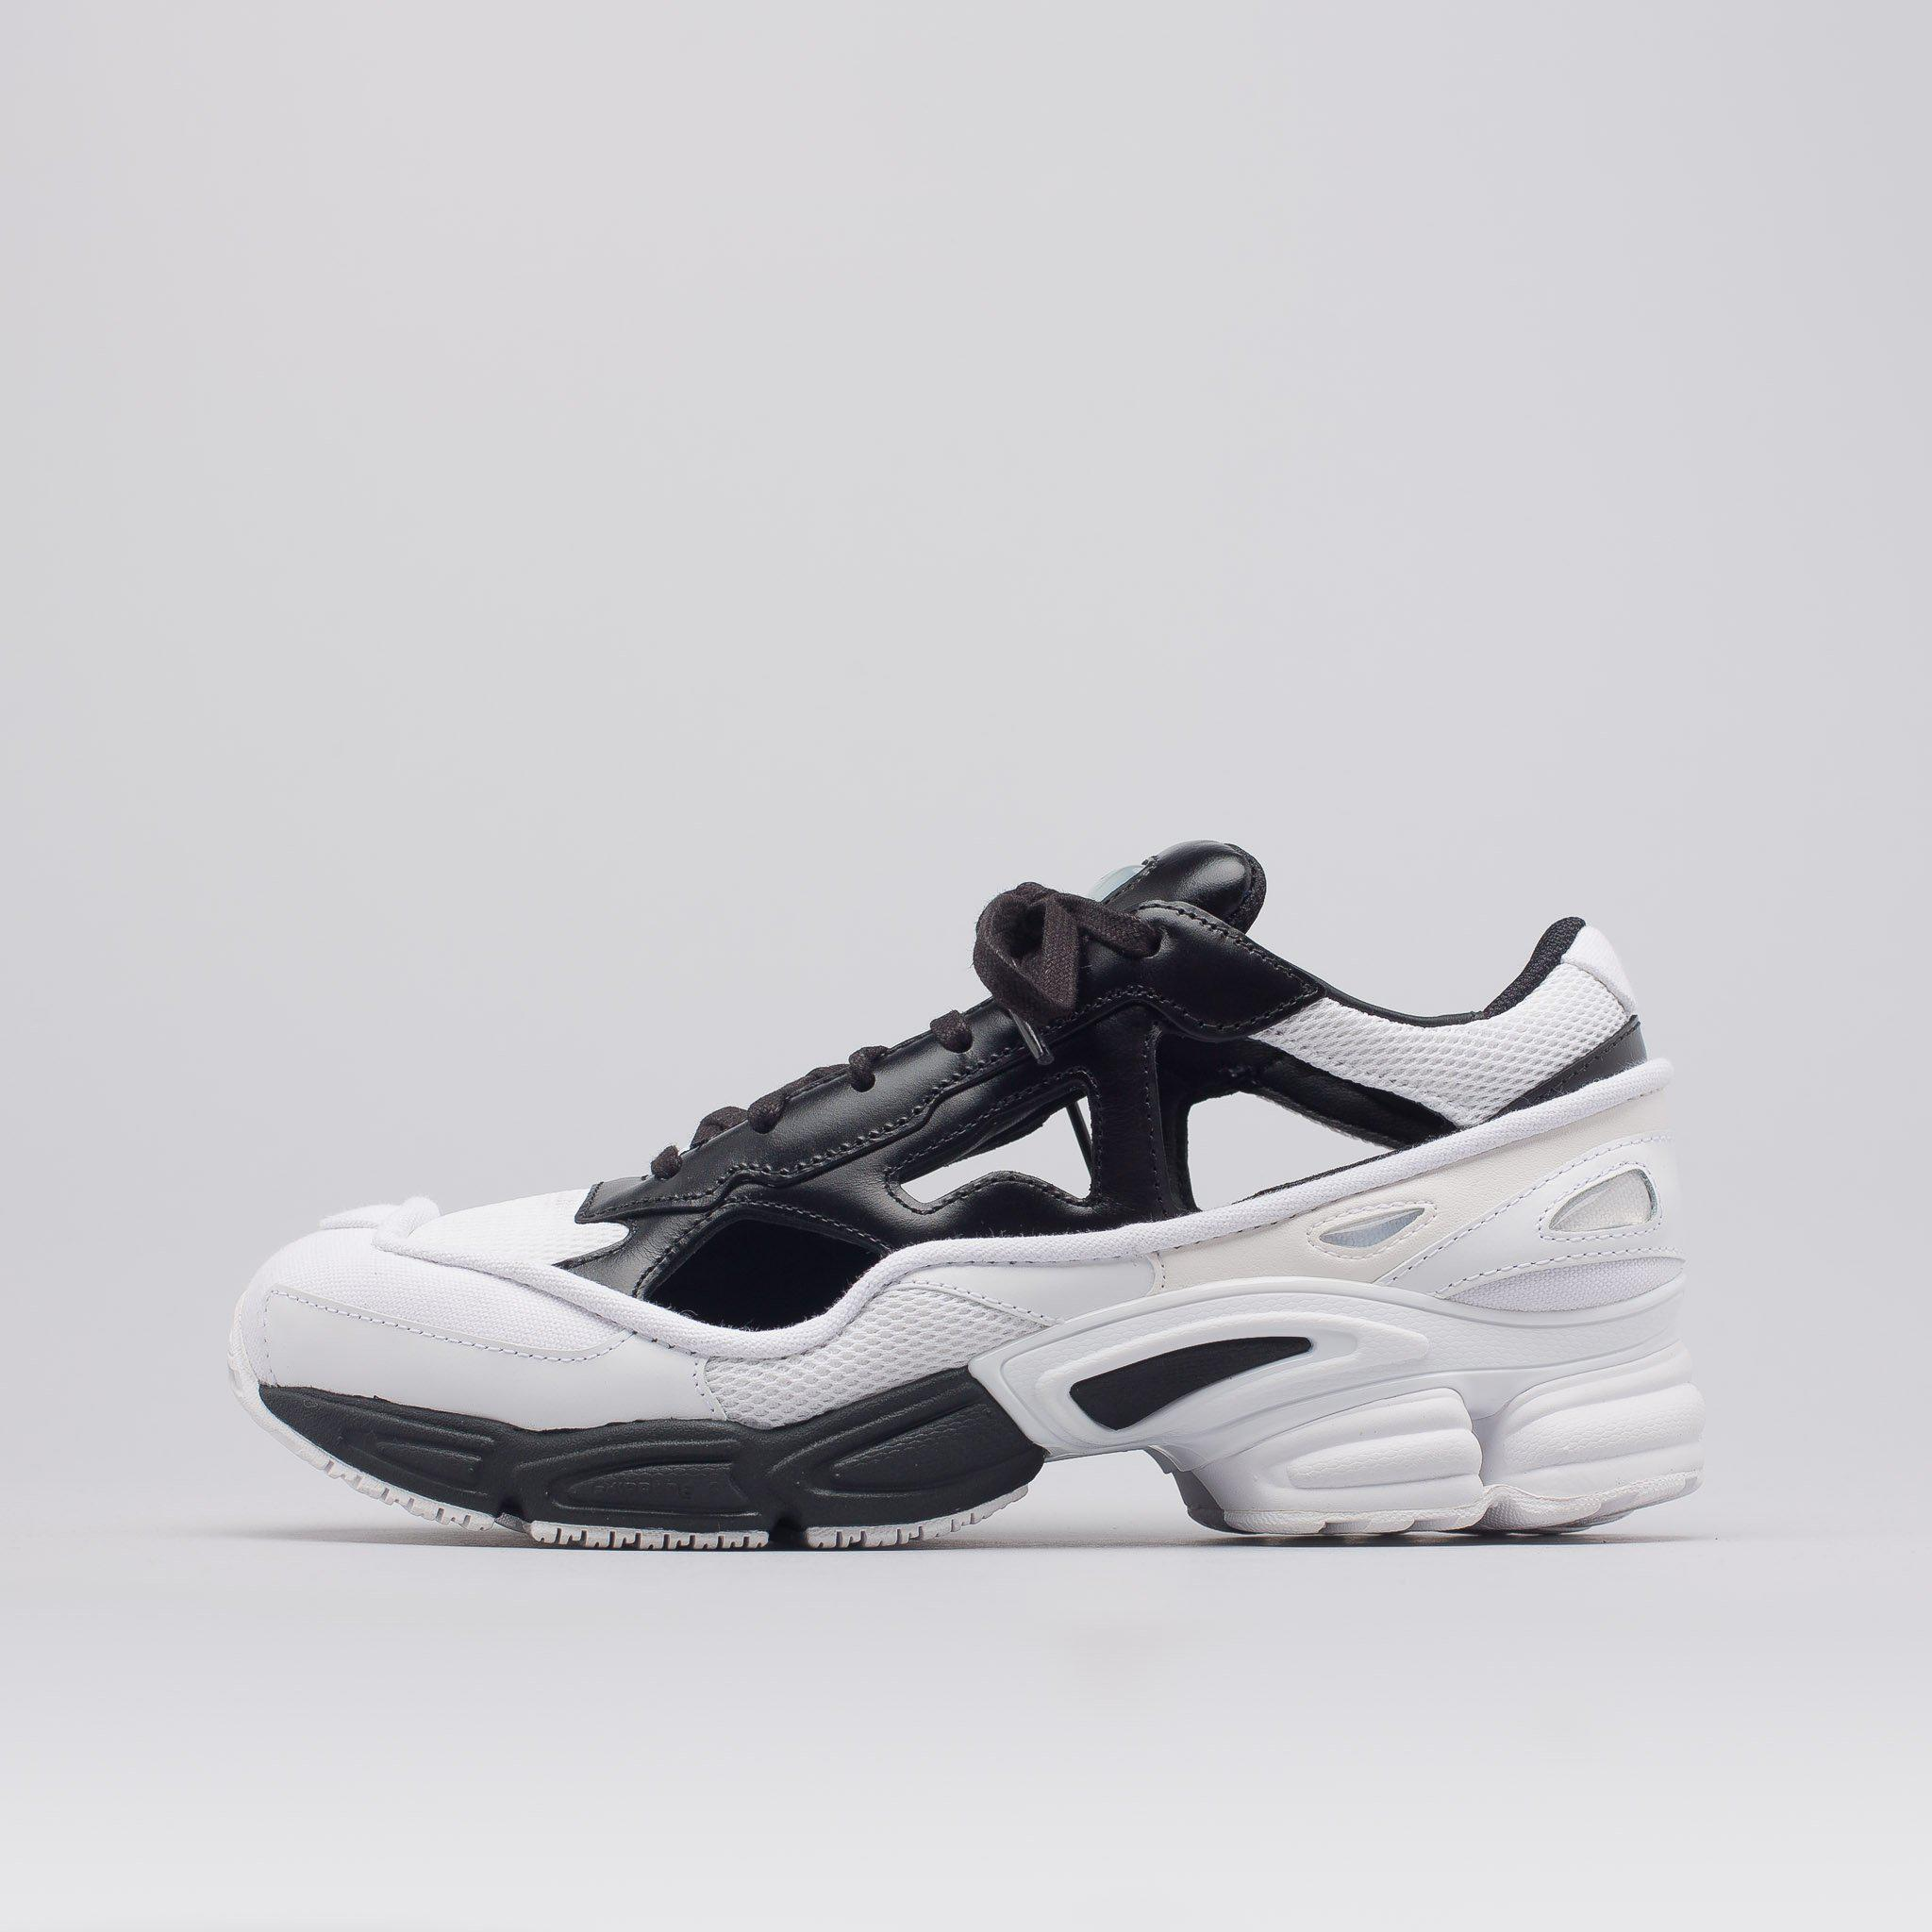 d75afd24bbe Lyst - adidas By Raf Simons Replicant Ozweego In Black white in ...